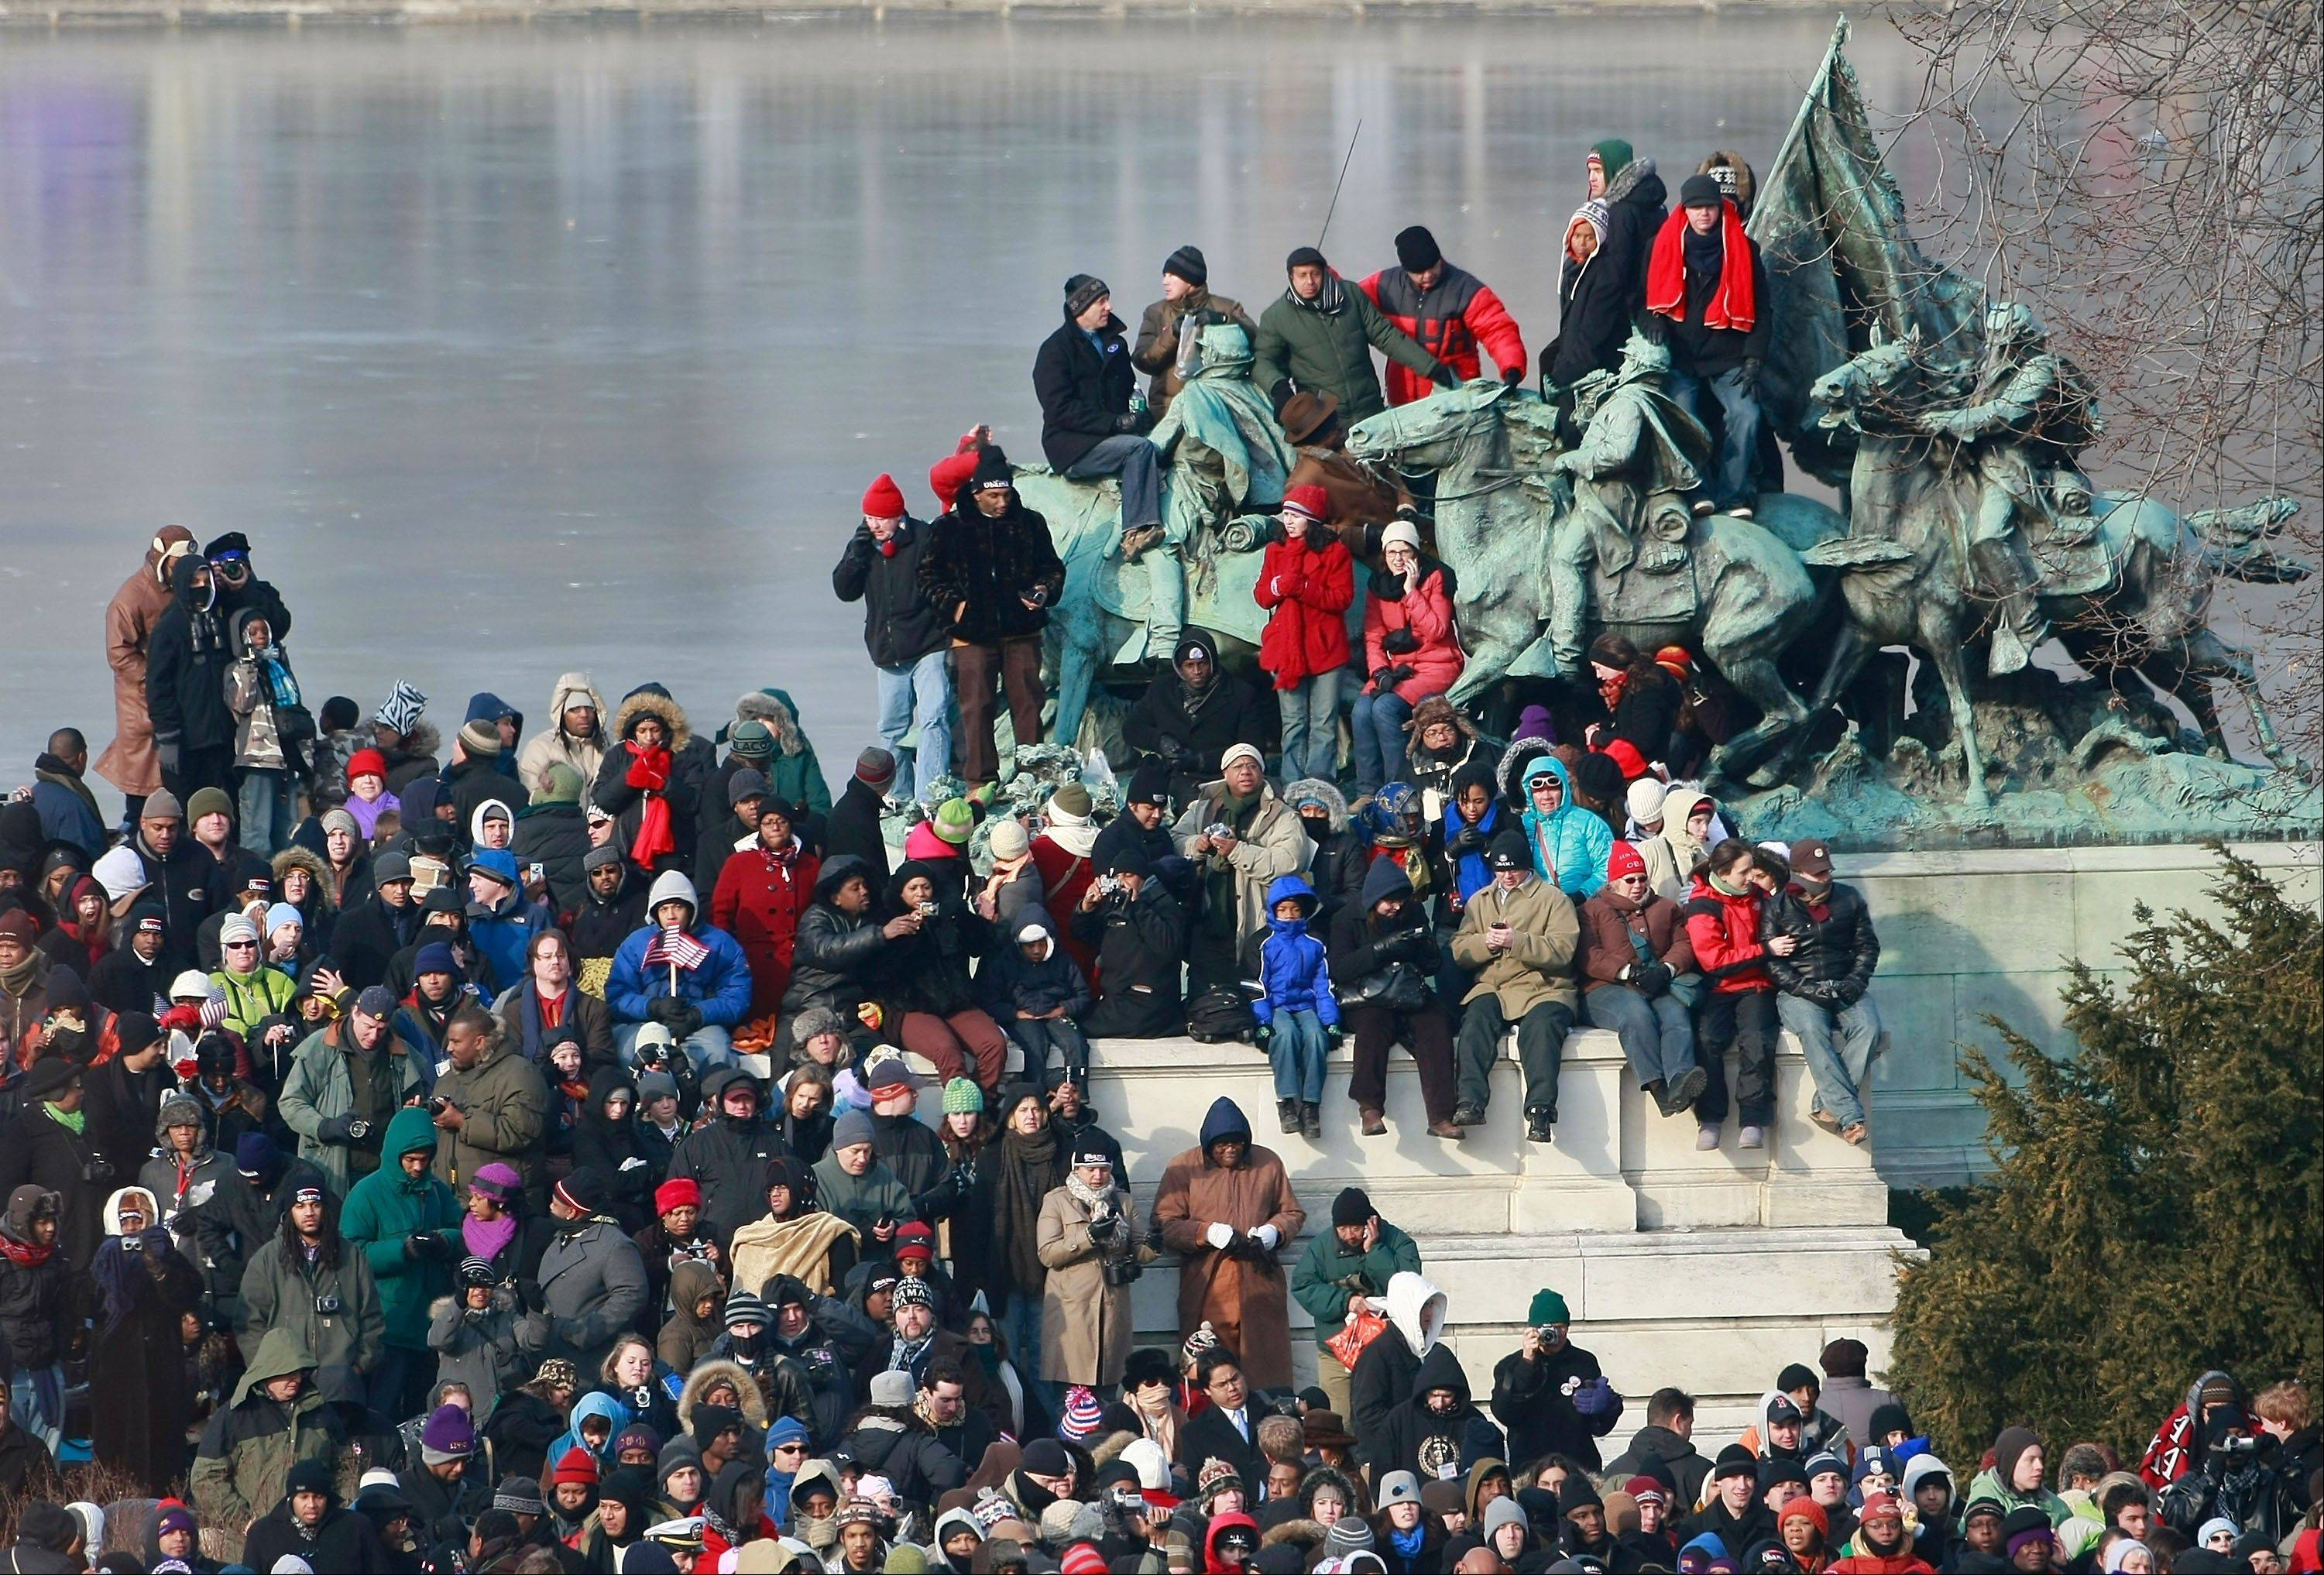 This Jan. 20, 2009 pool-file photo shows crowds standing on and near a statue next to the on the National Mall ahead of the inauguration of Barack Obama as the 44th President of the United States of America.